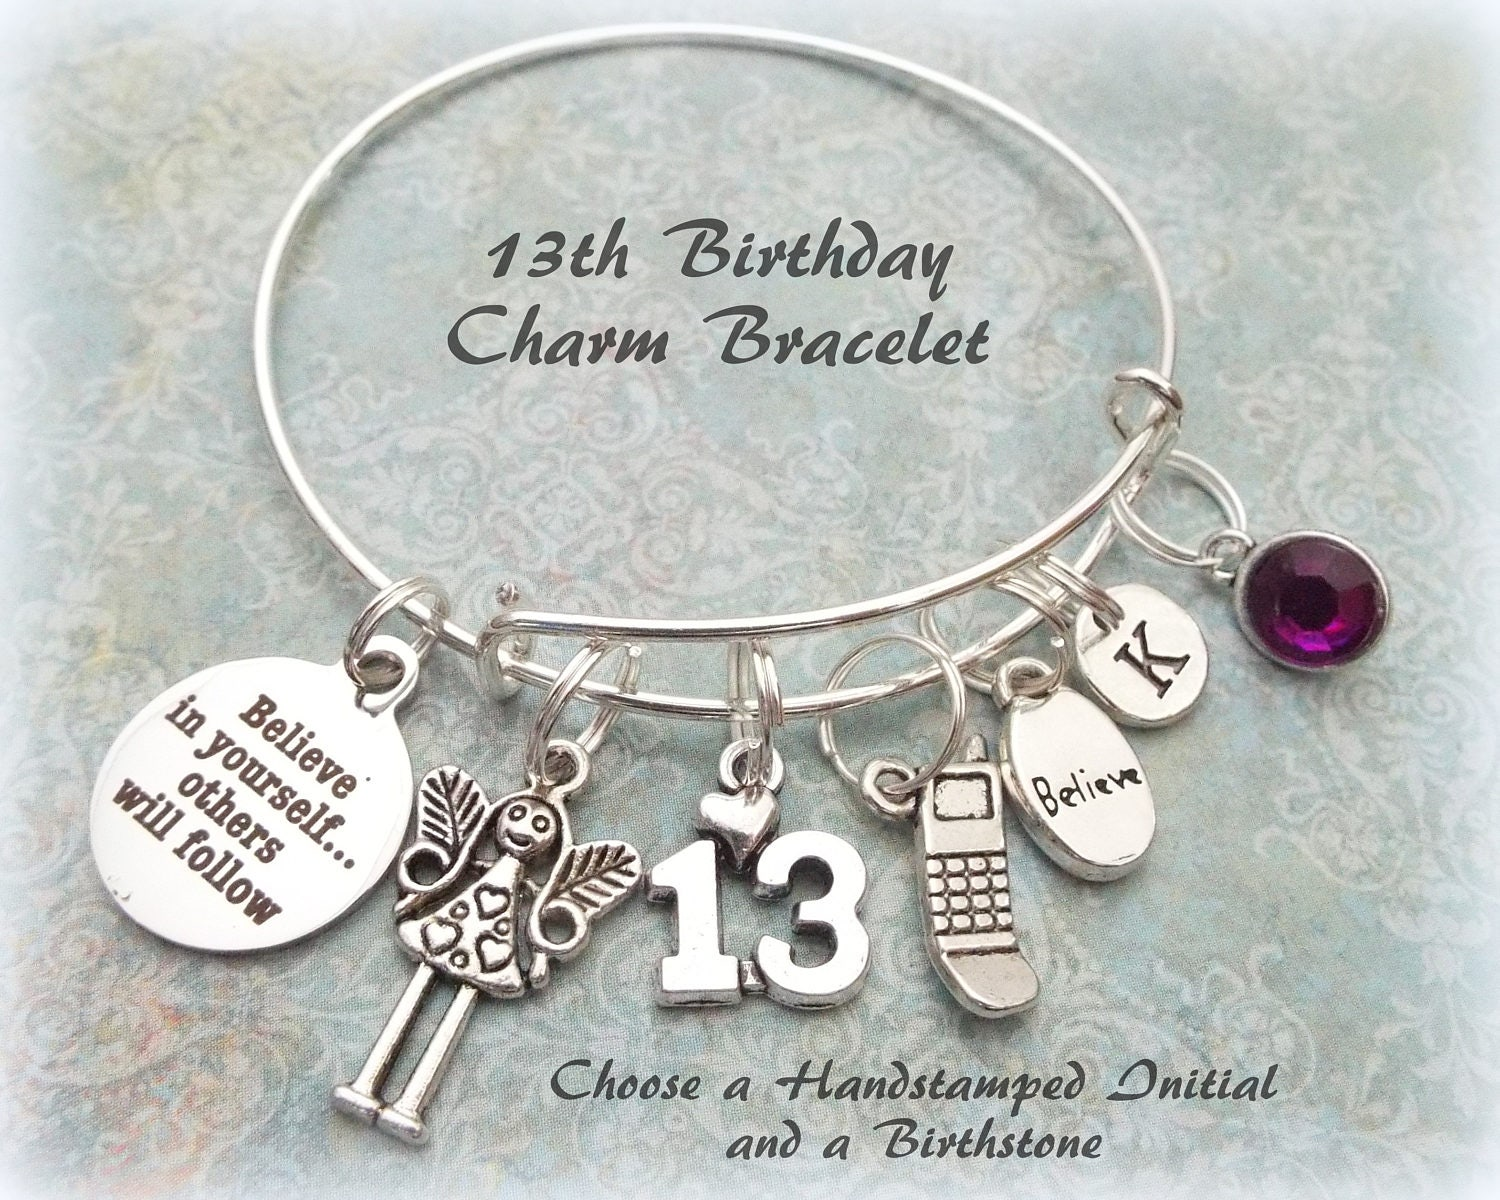 13th Birthday Gift, Gift For 13 Year Old, Daughter Gift Ideas, Gift For